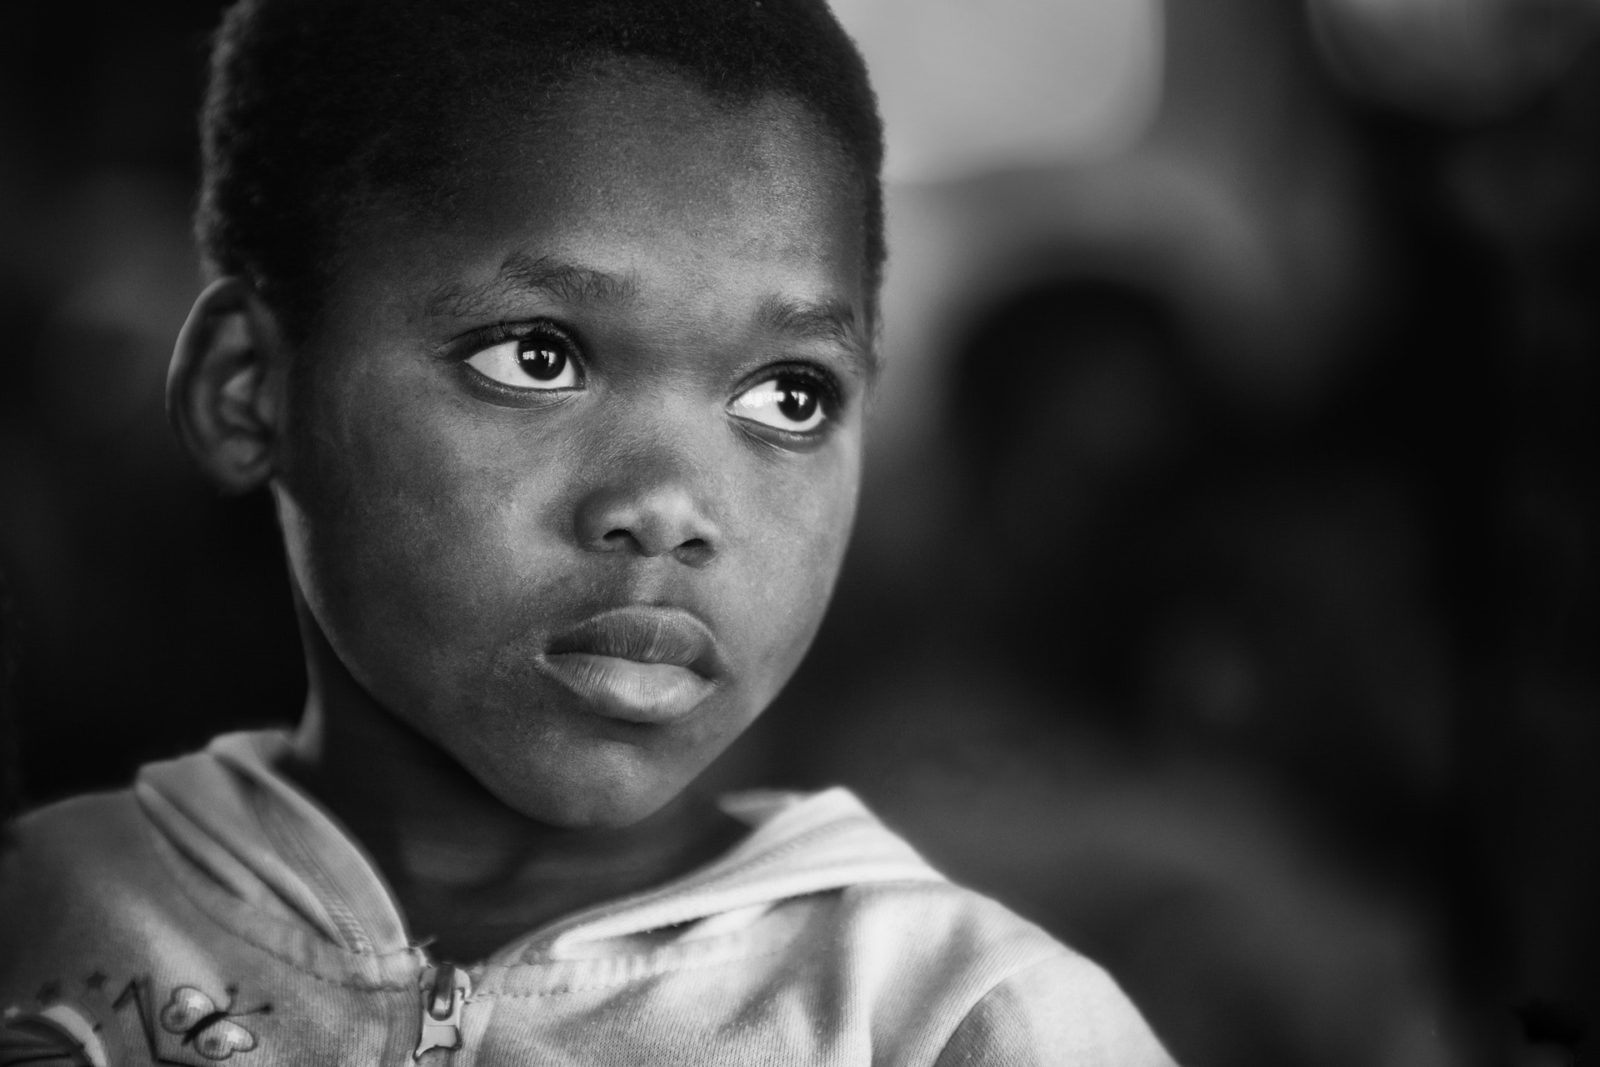 Black and white African child